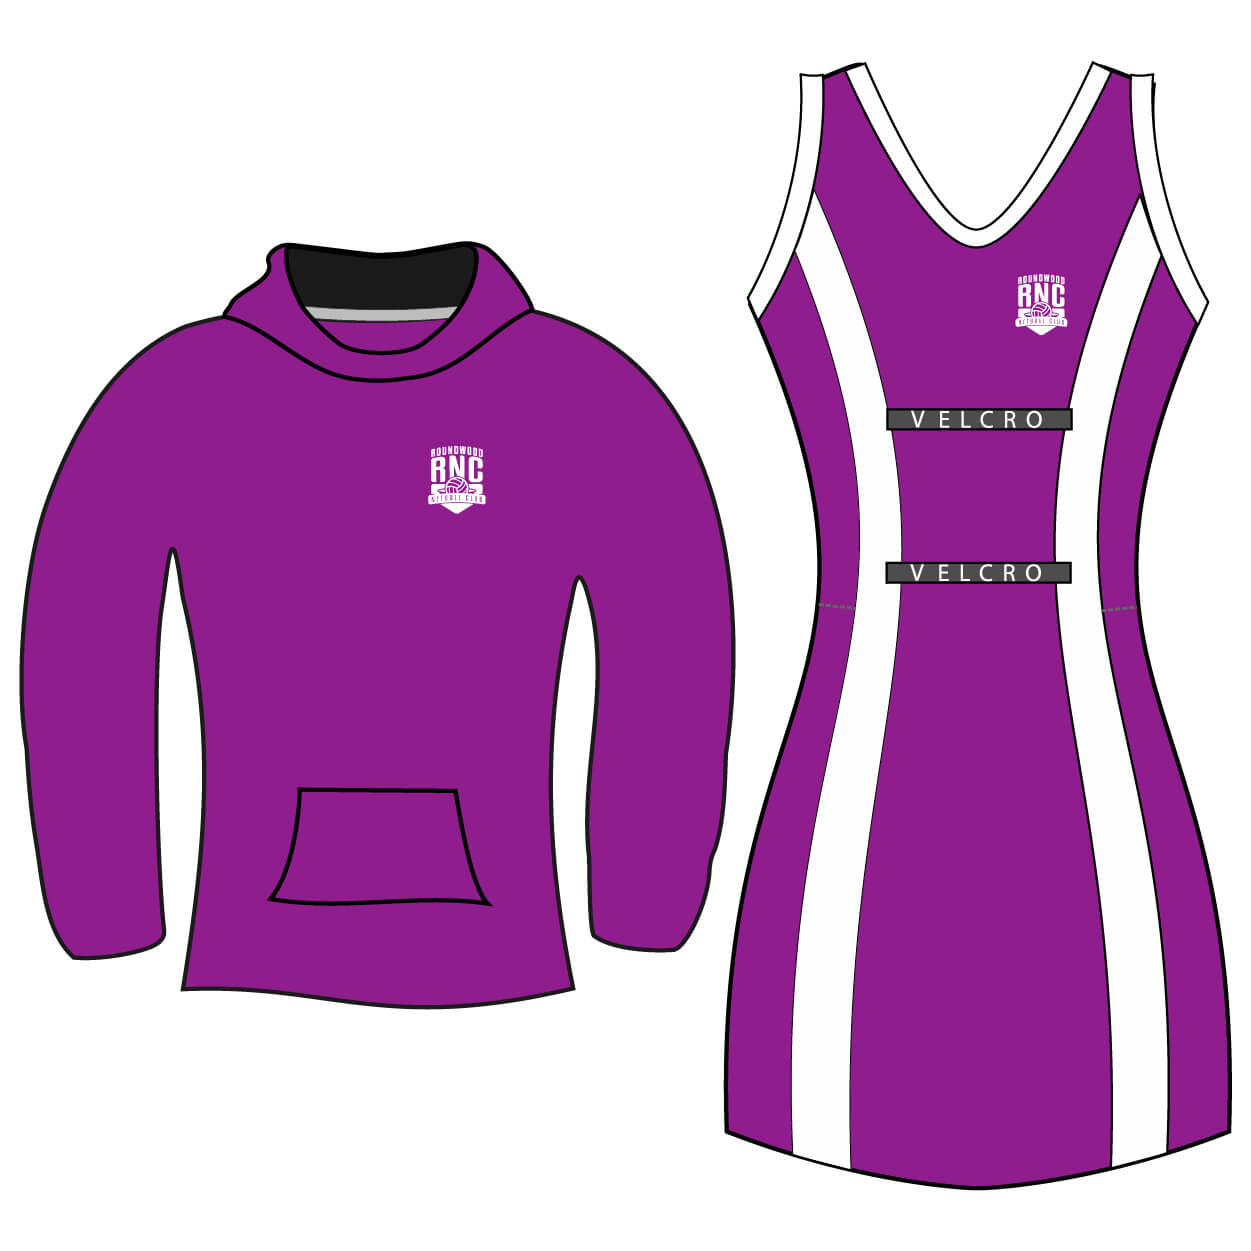 roundwood netball club_Hoodie and Netball Combo juniors